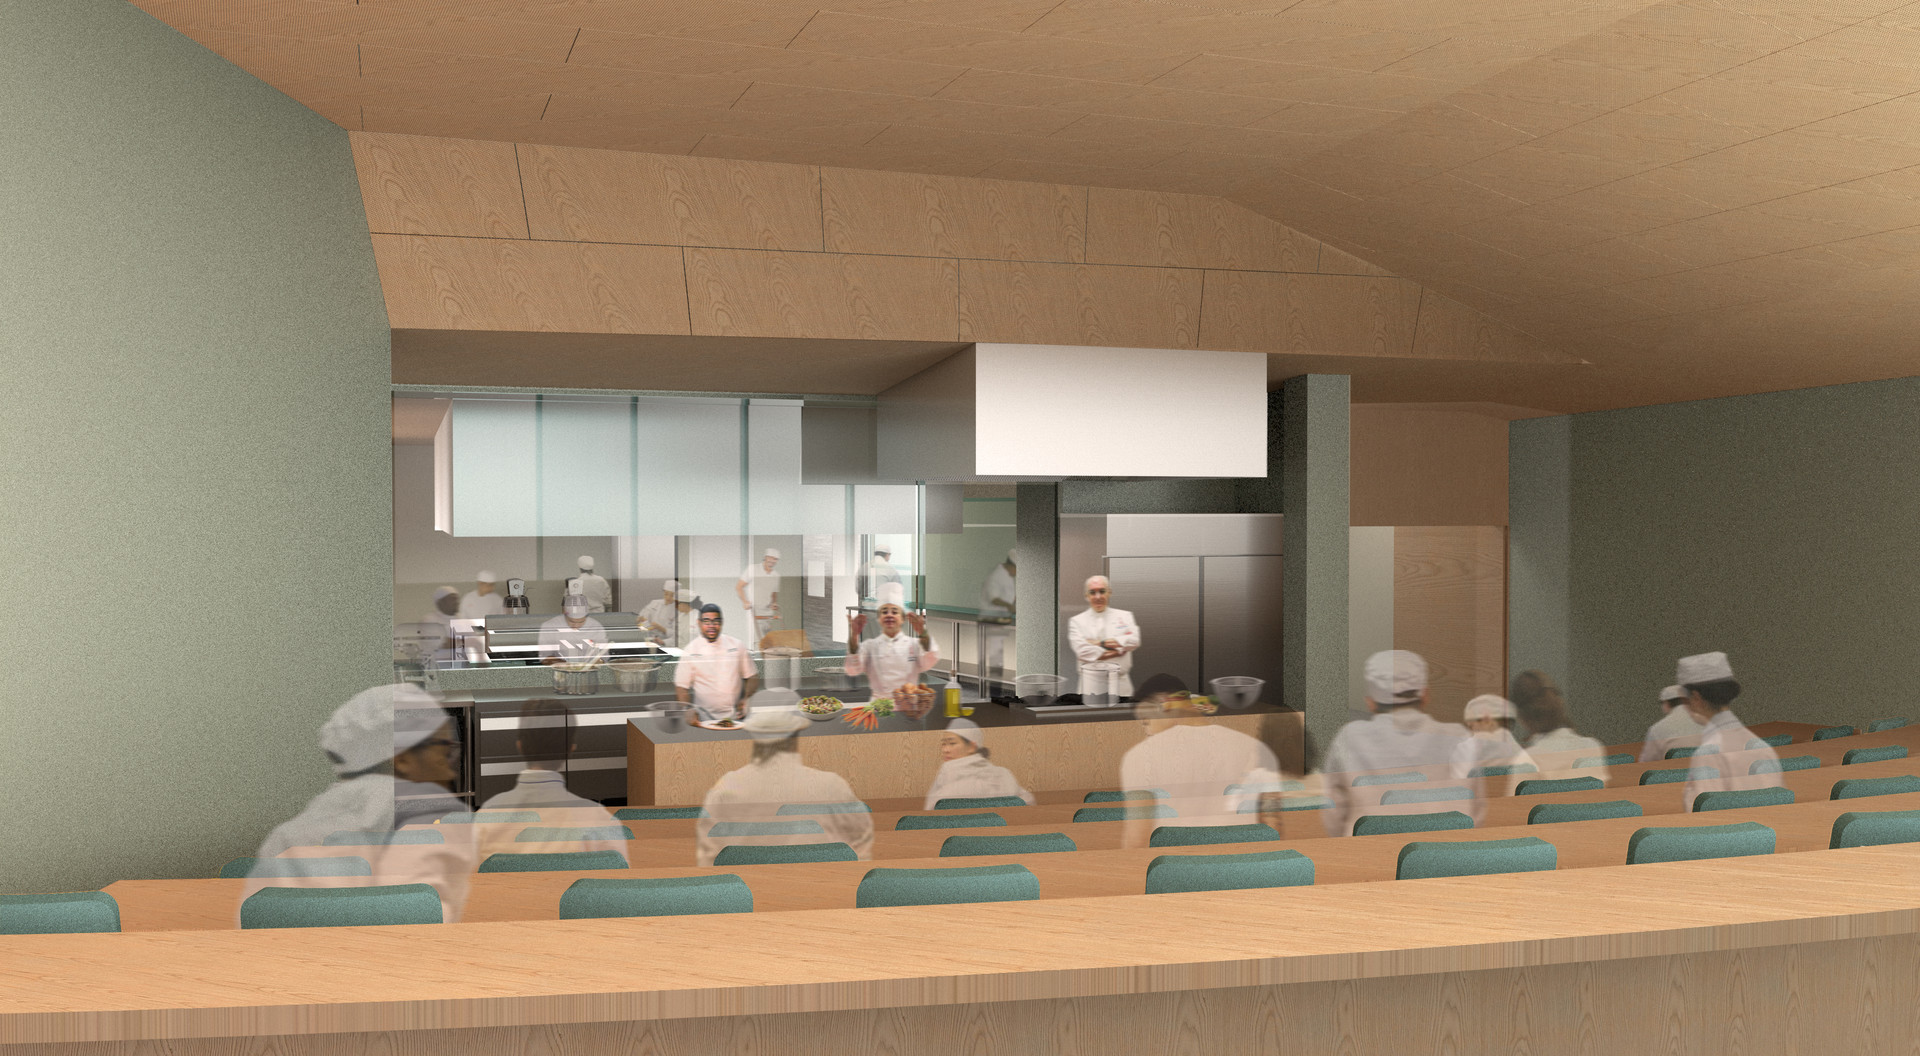 Theater for cooking demonstrations